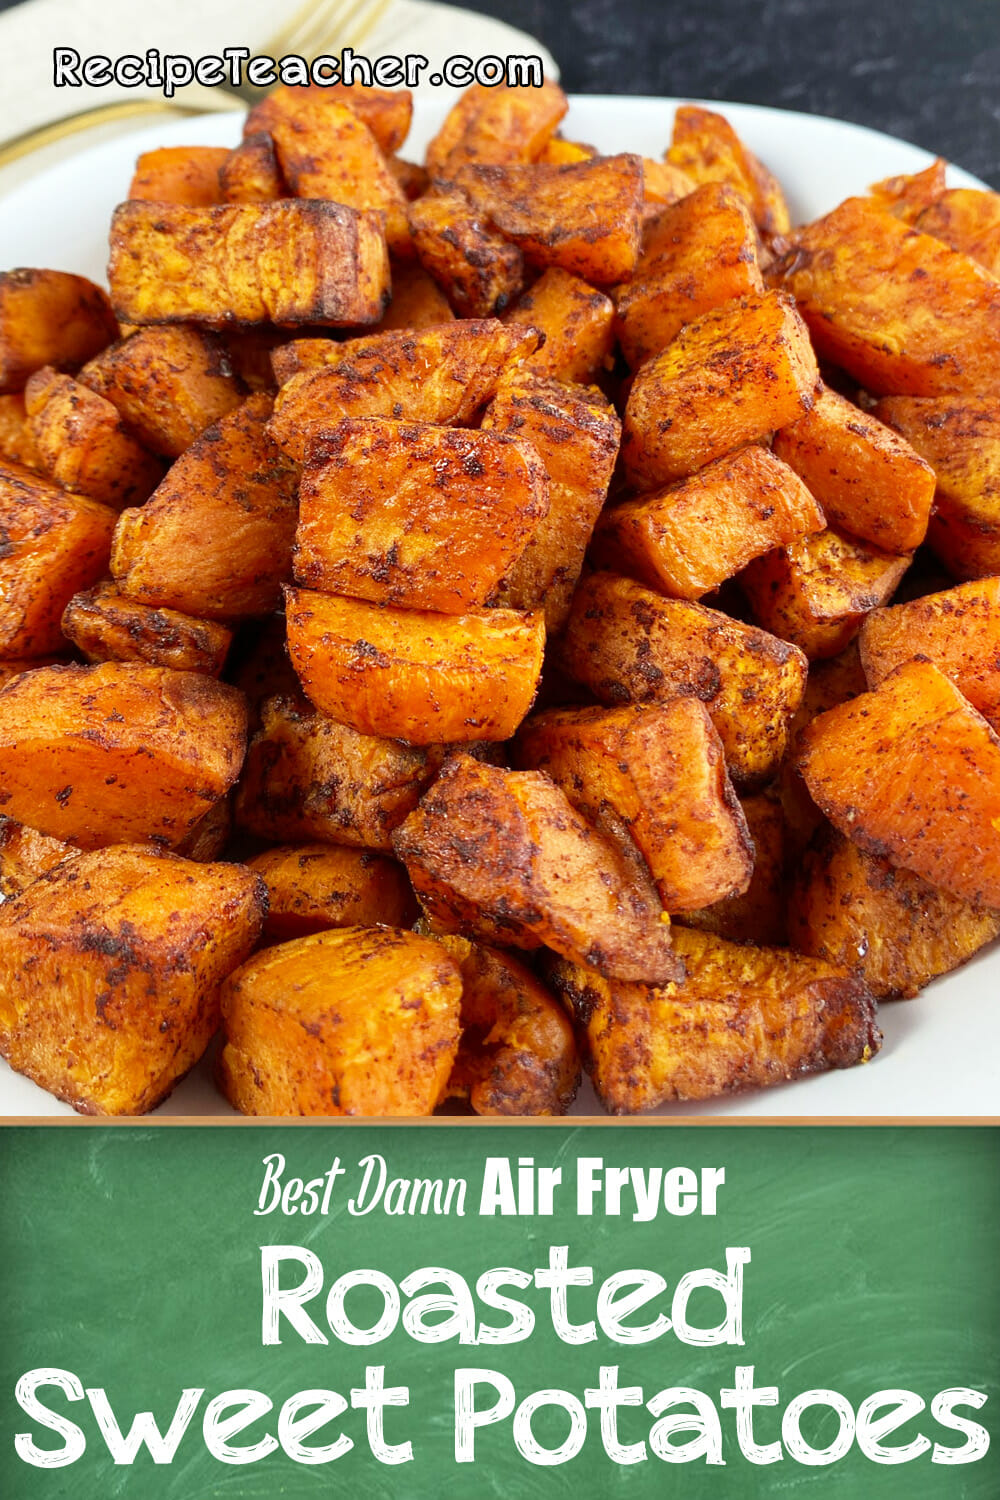 Recipe for roasted air fryer sweet potatoes.